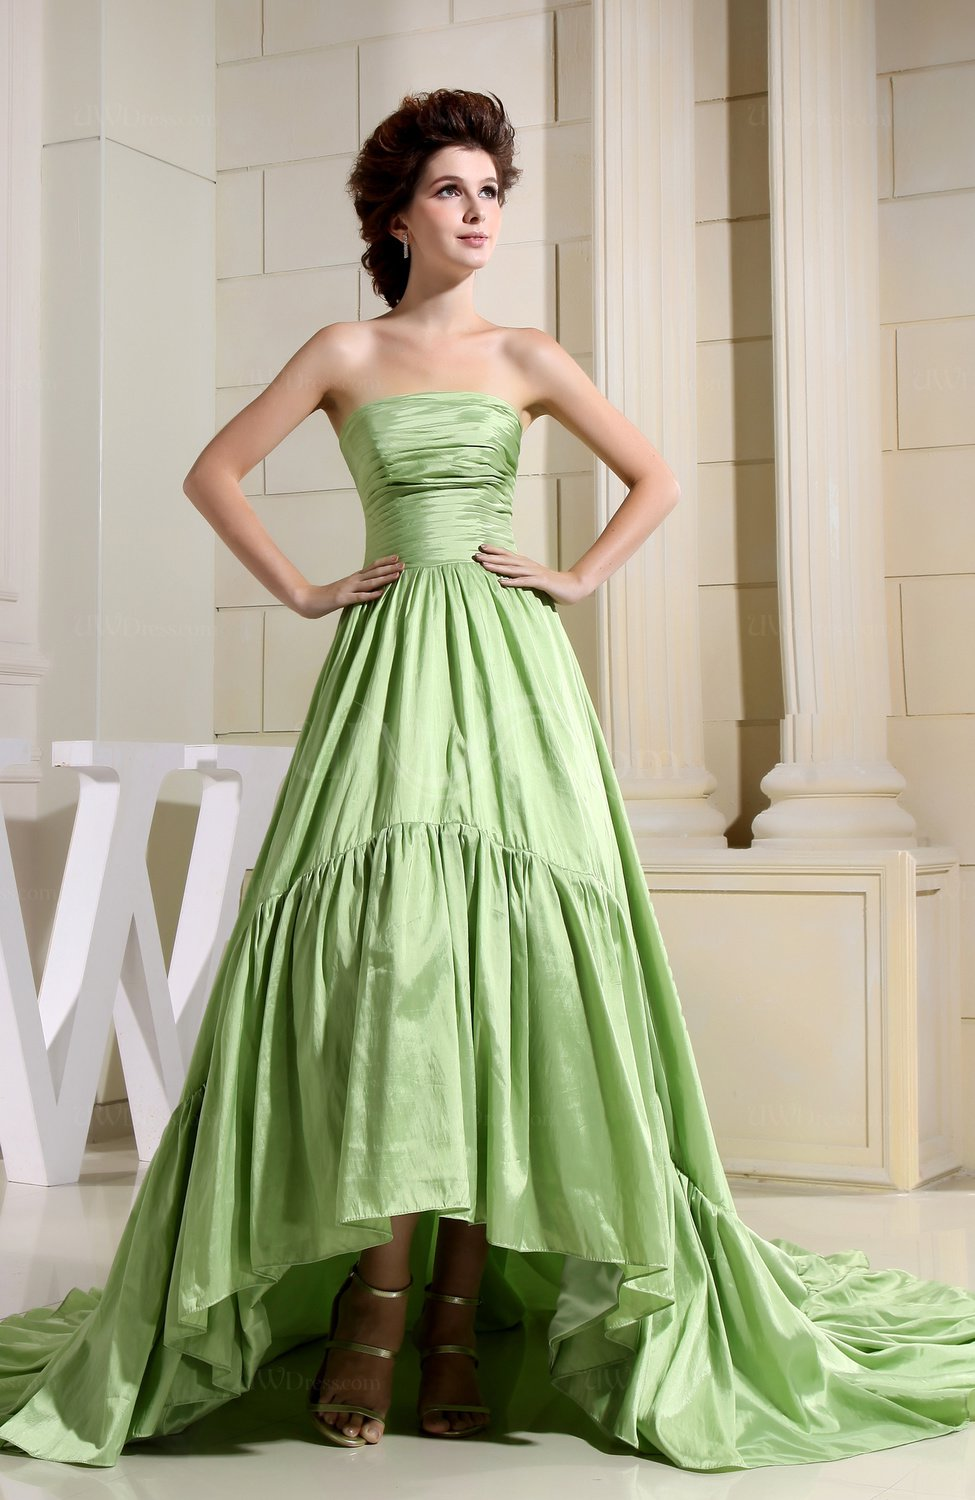 Disney Princess Church A-line Strapless Taffeta Tea Length Bridal ...